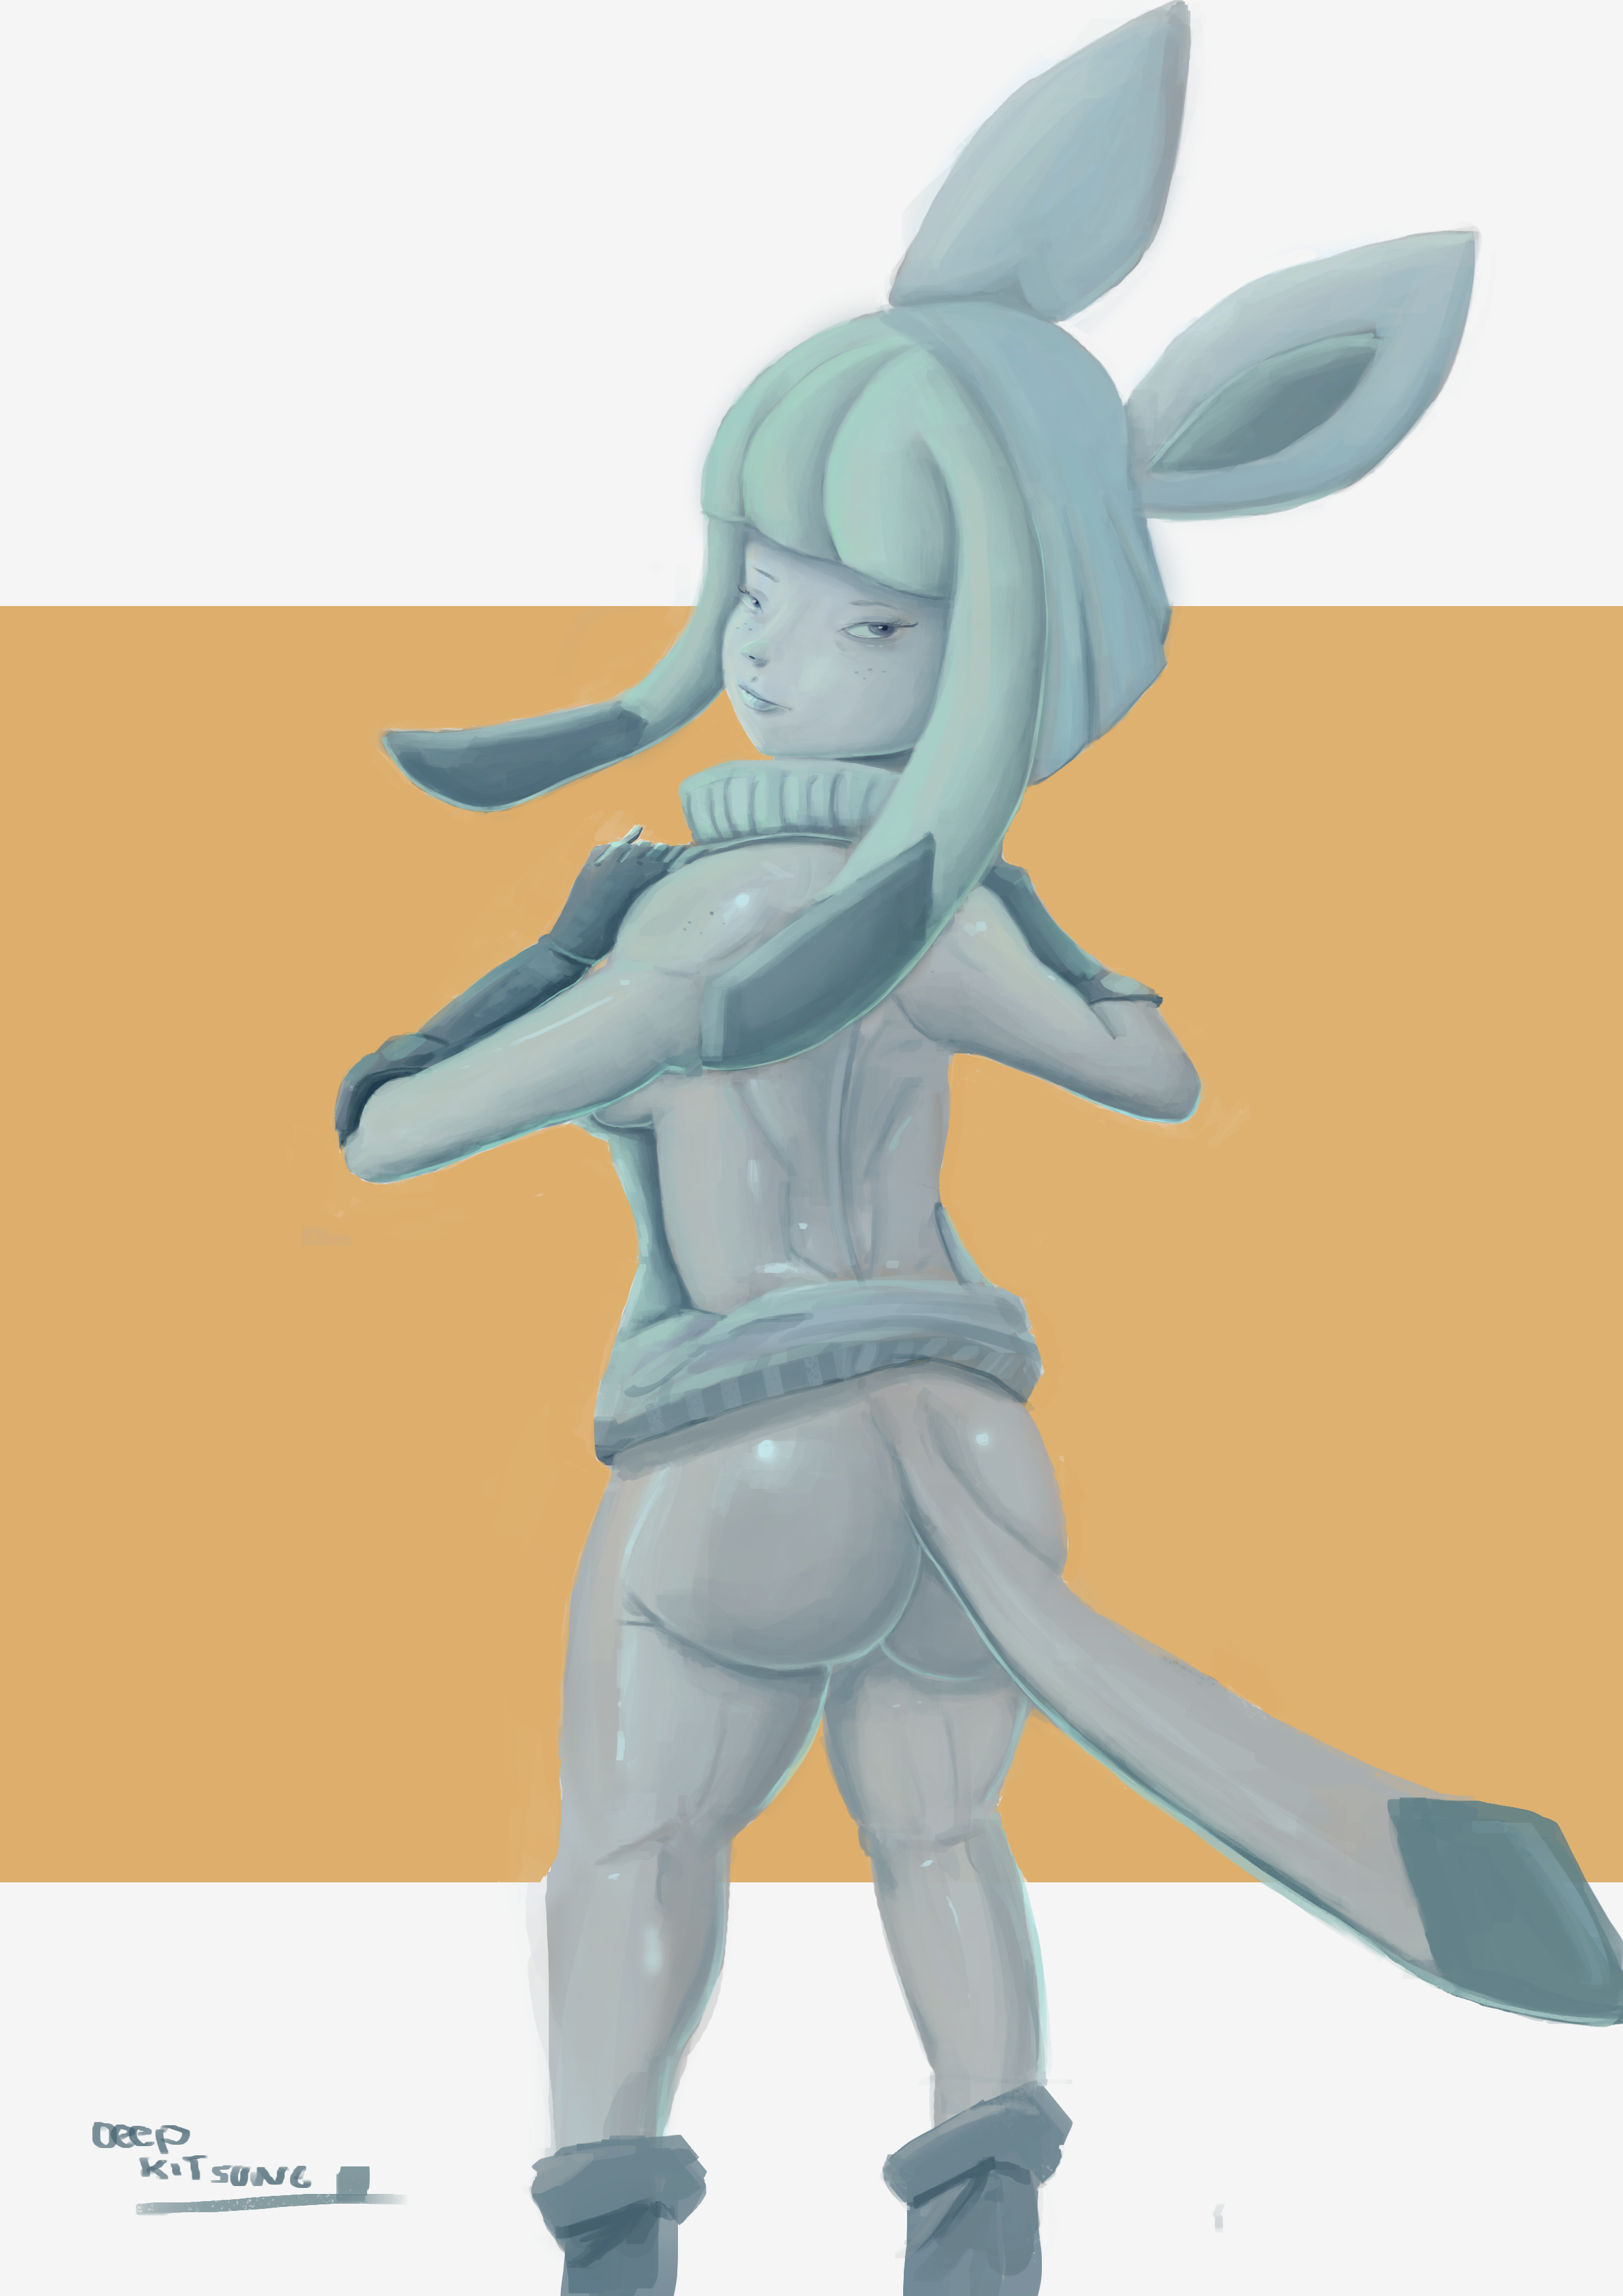 glaceonbutt